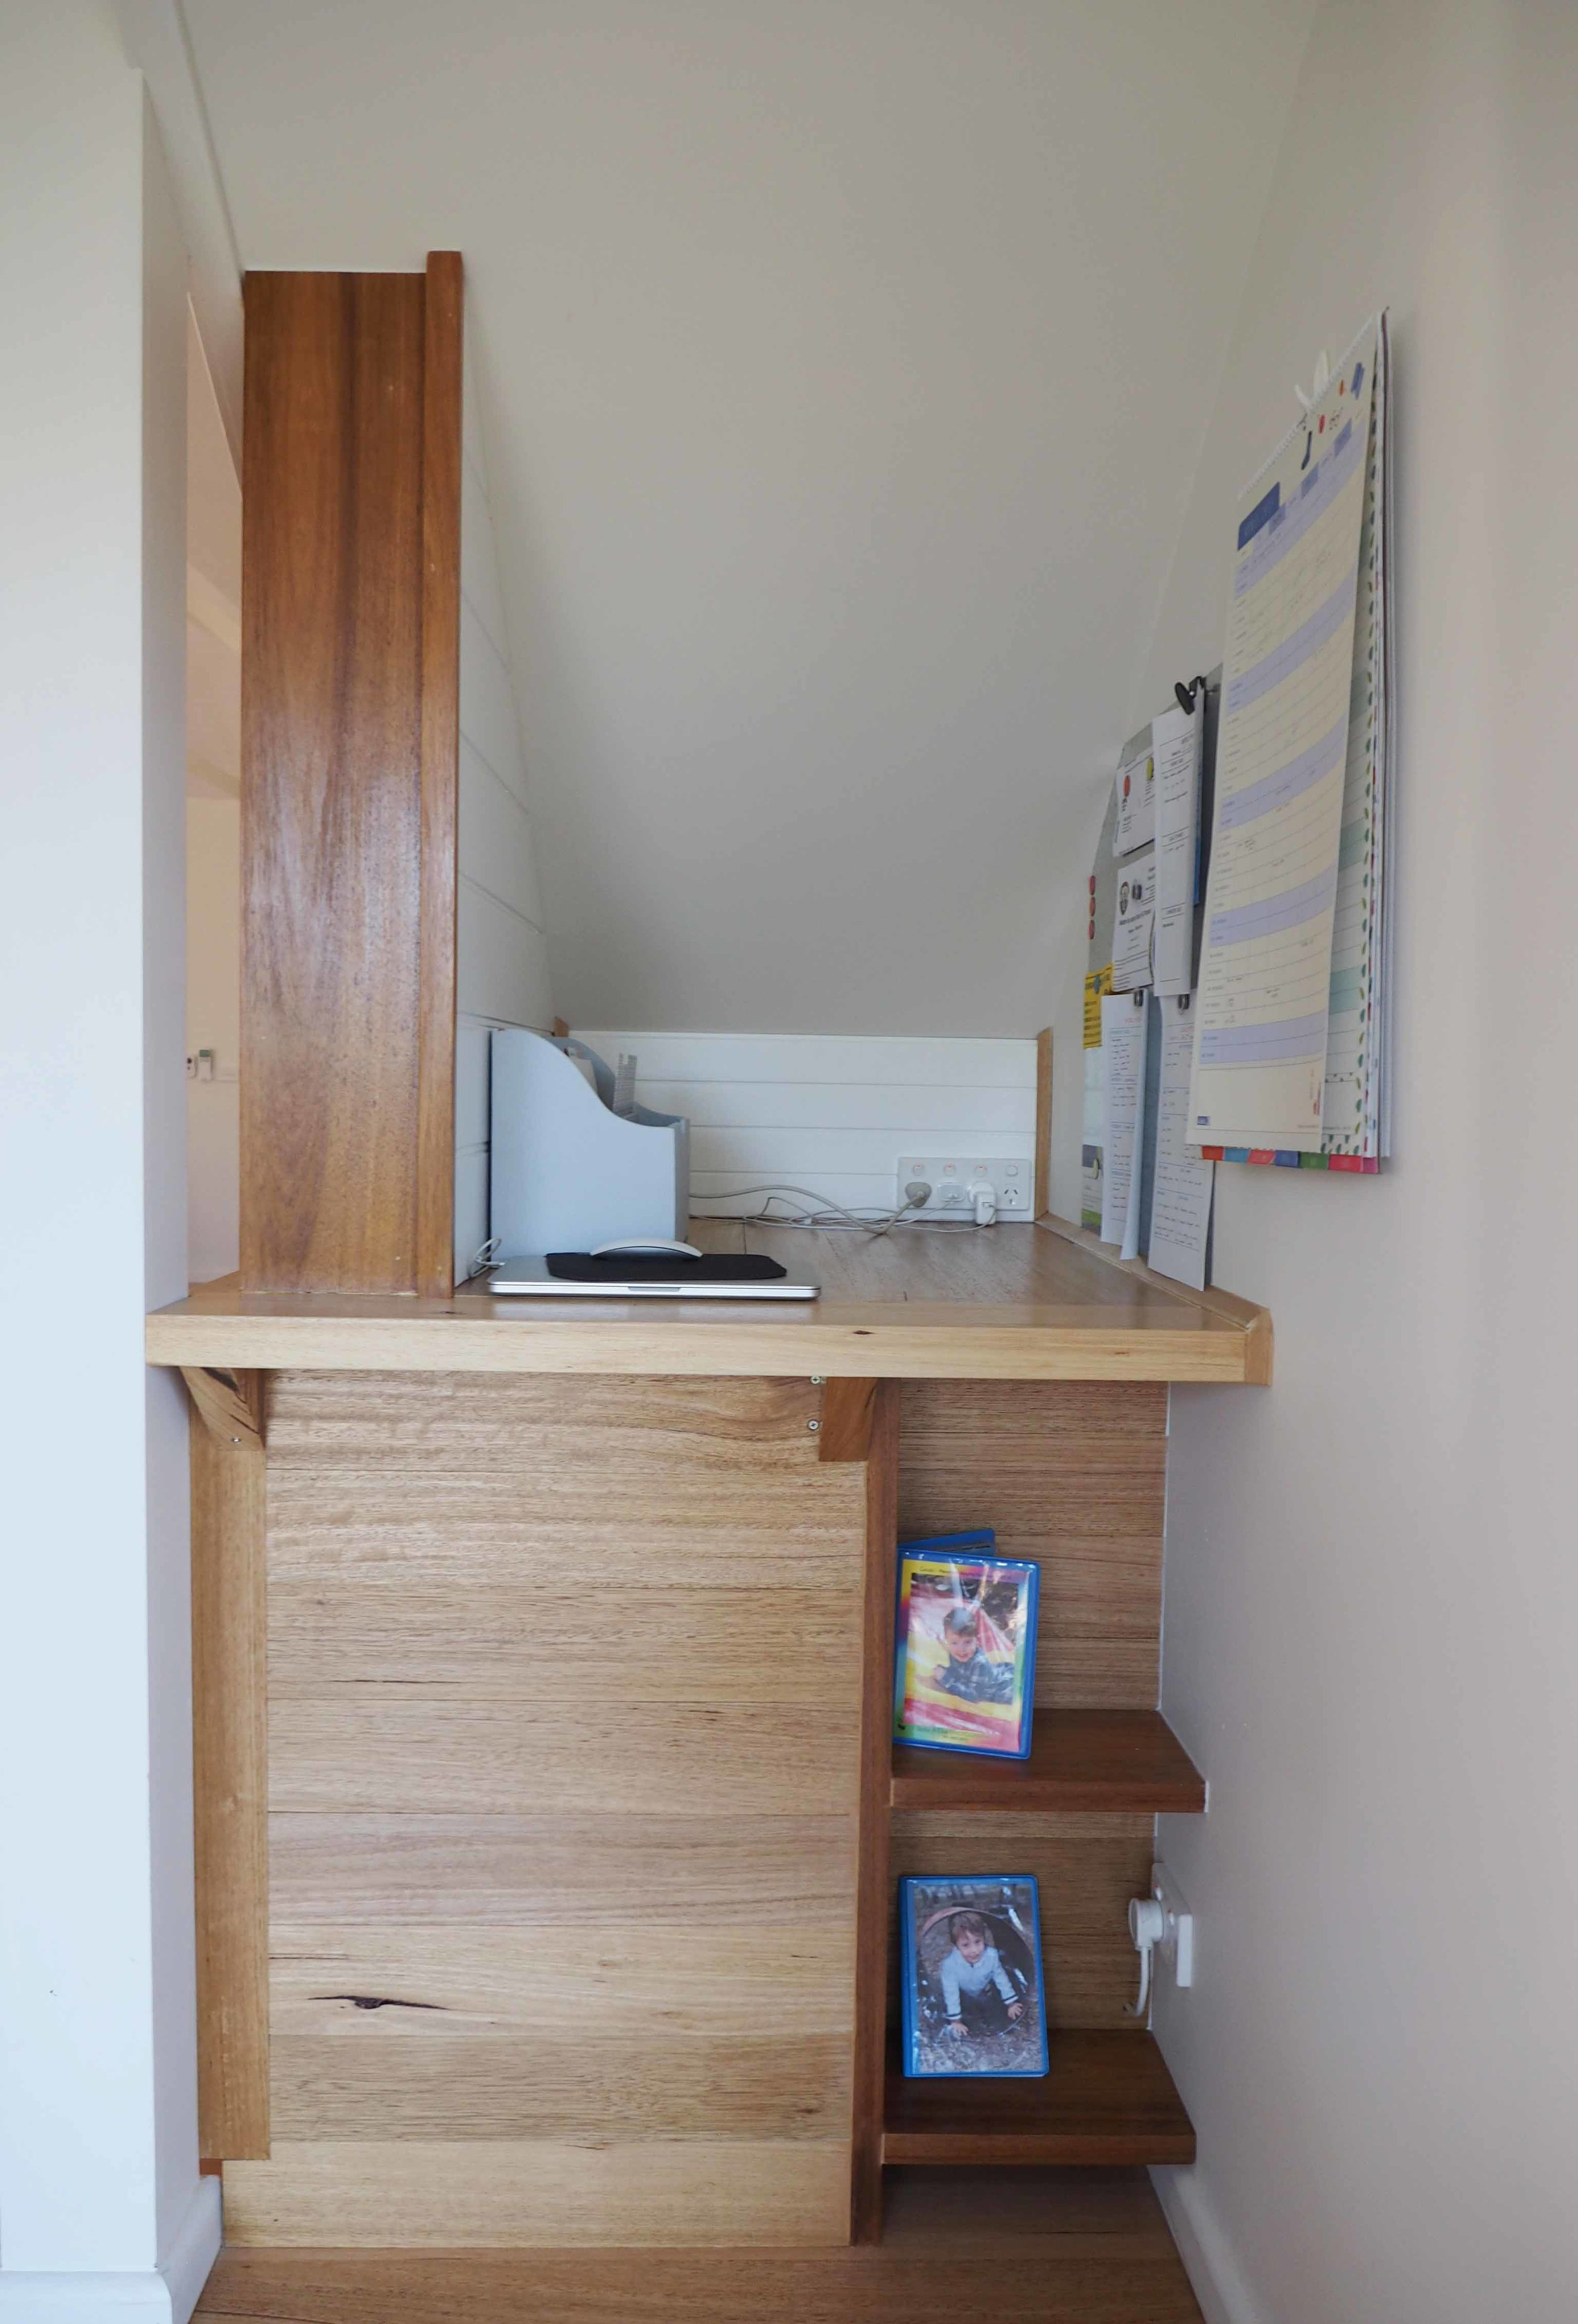 An organised family command centre using vertical space to display important information and calendar {The Organised You}